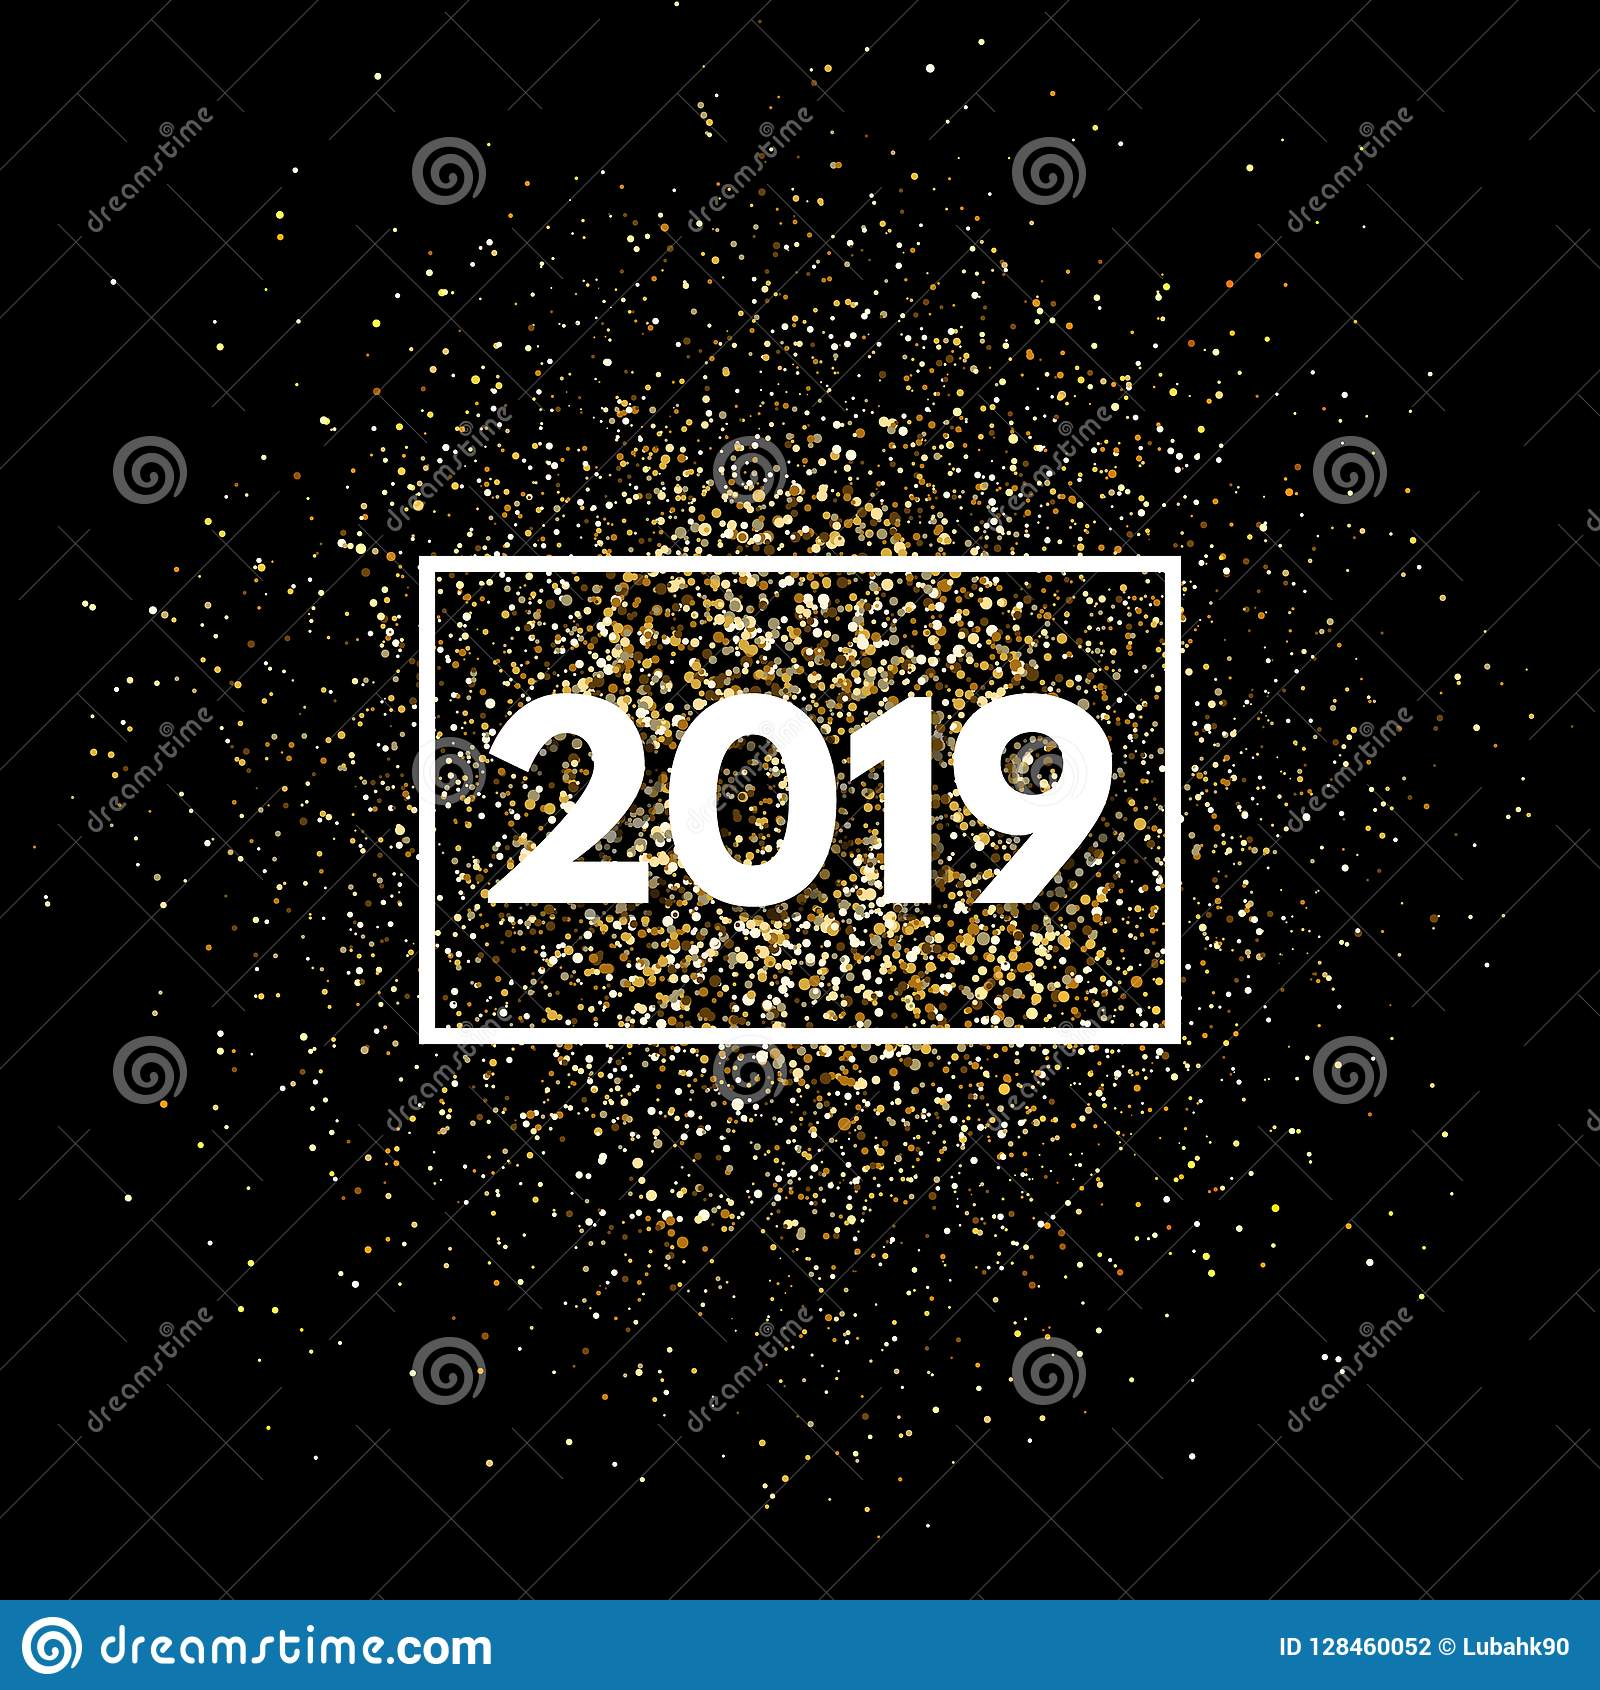 2019 new year background with gold glitter gold glitter particles splatter bright festive premium